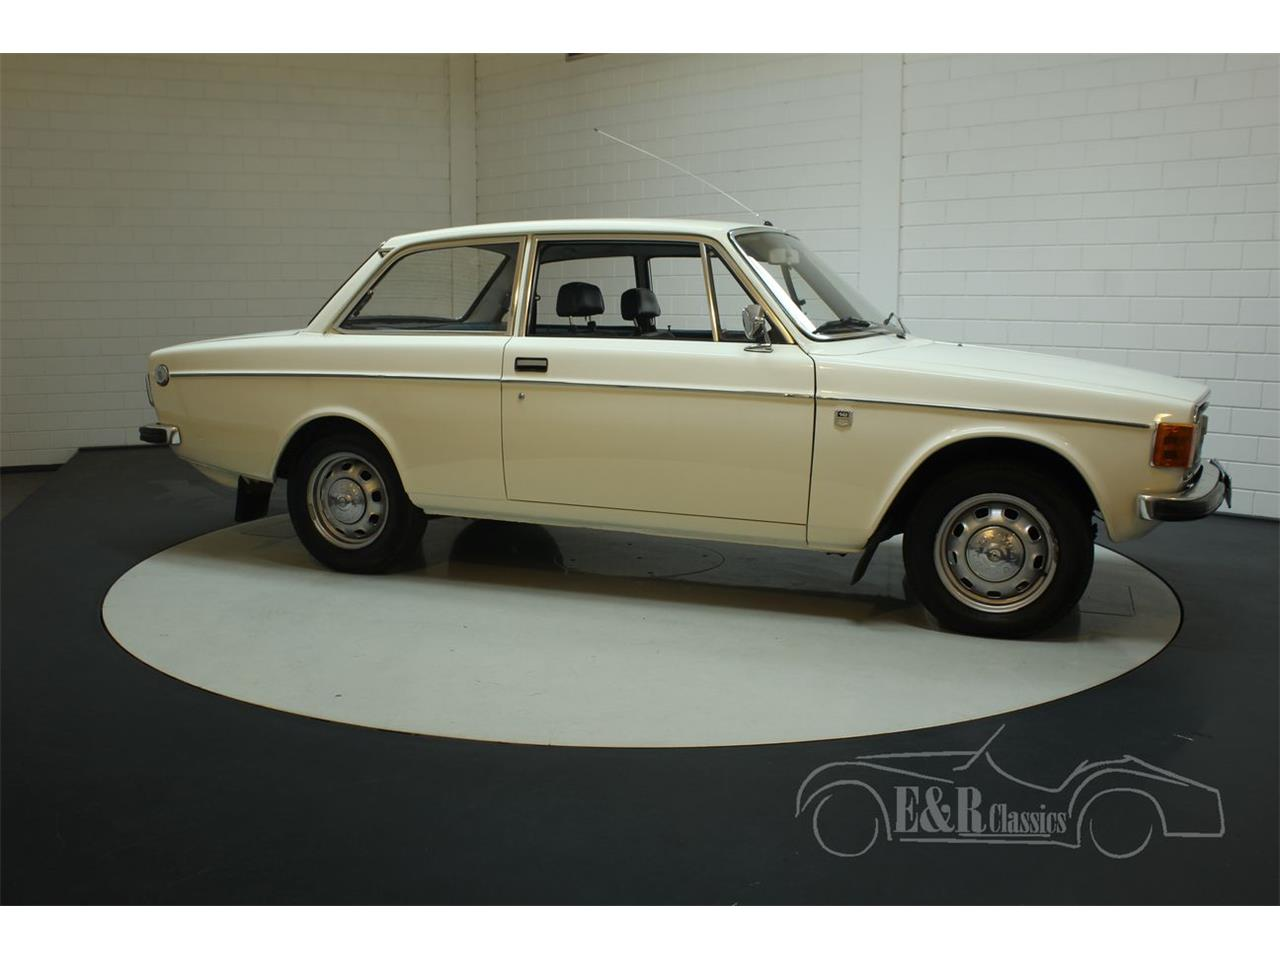 Large Picture of '72 Volvo 142 located in Waalwijk noord brabant - $13,400.00 Offered by E & R Classics - Q3GJ